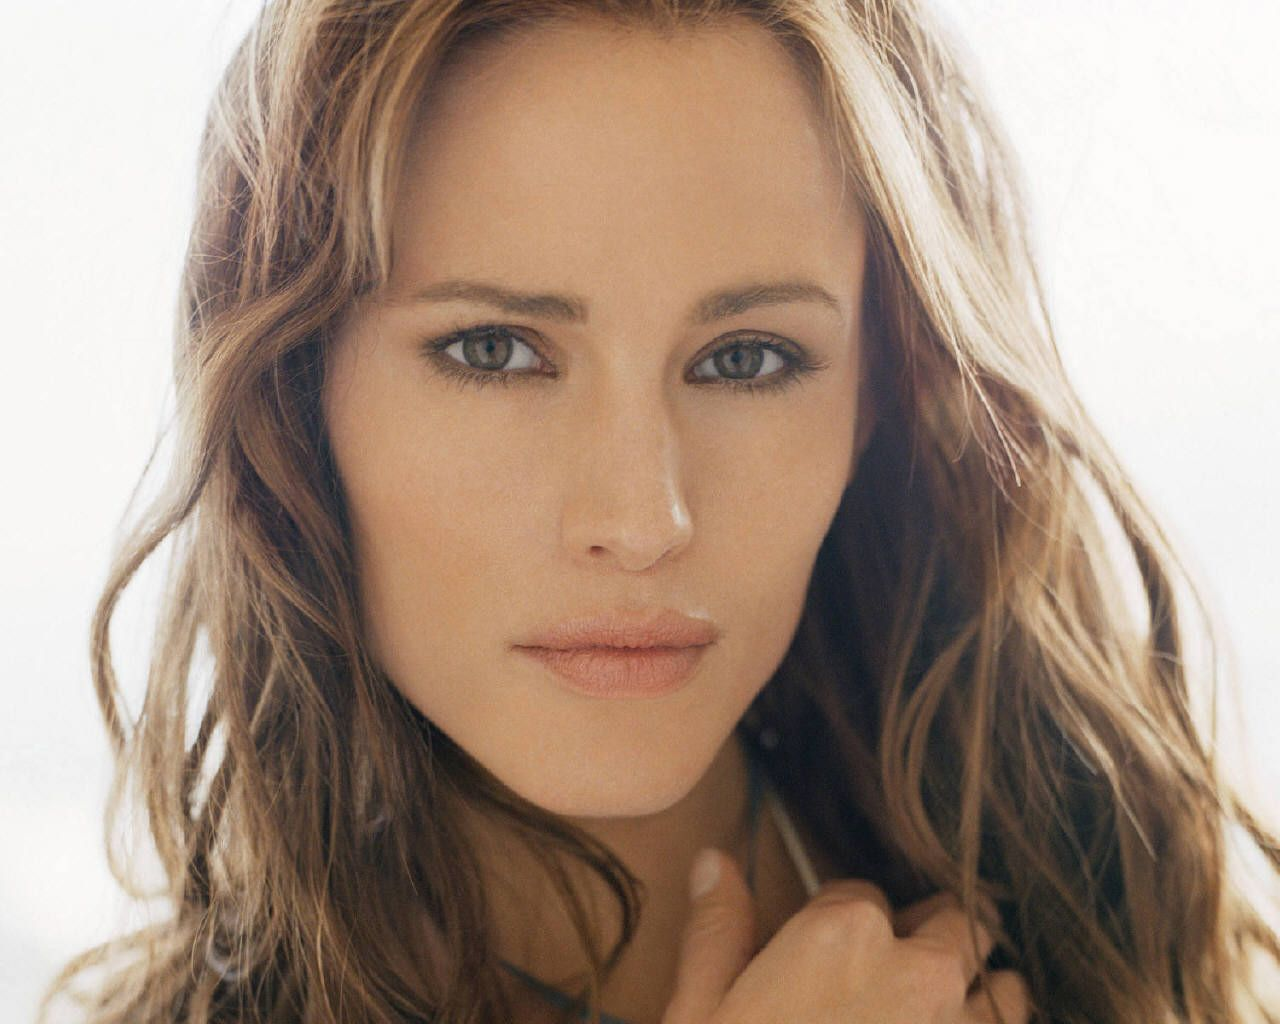 Jennifer garner jennifer garner pinterest sexy beautiful and